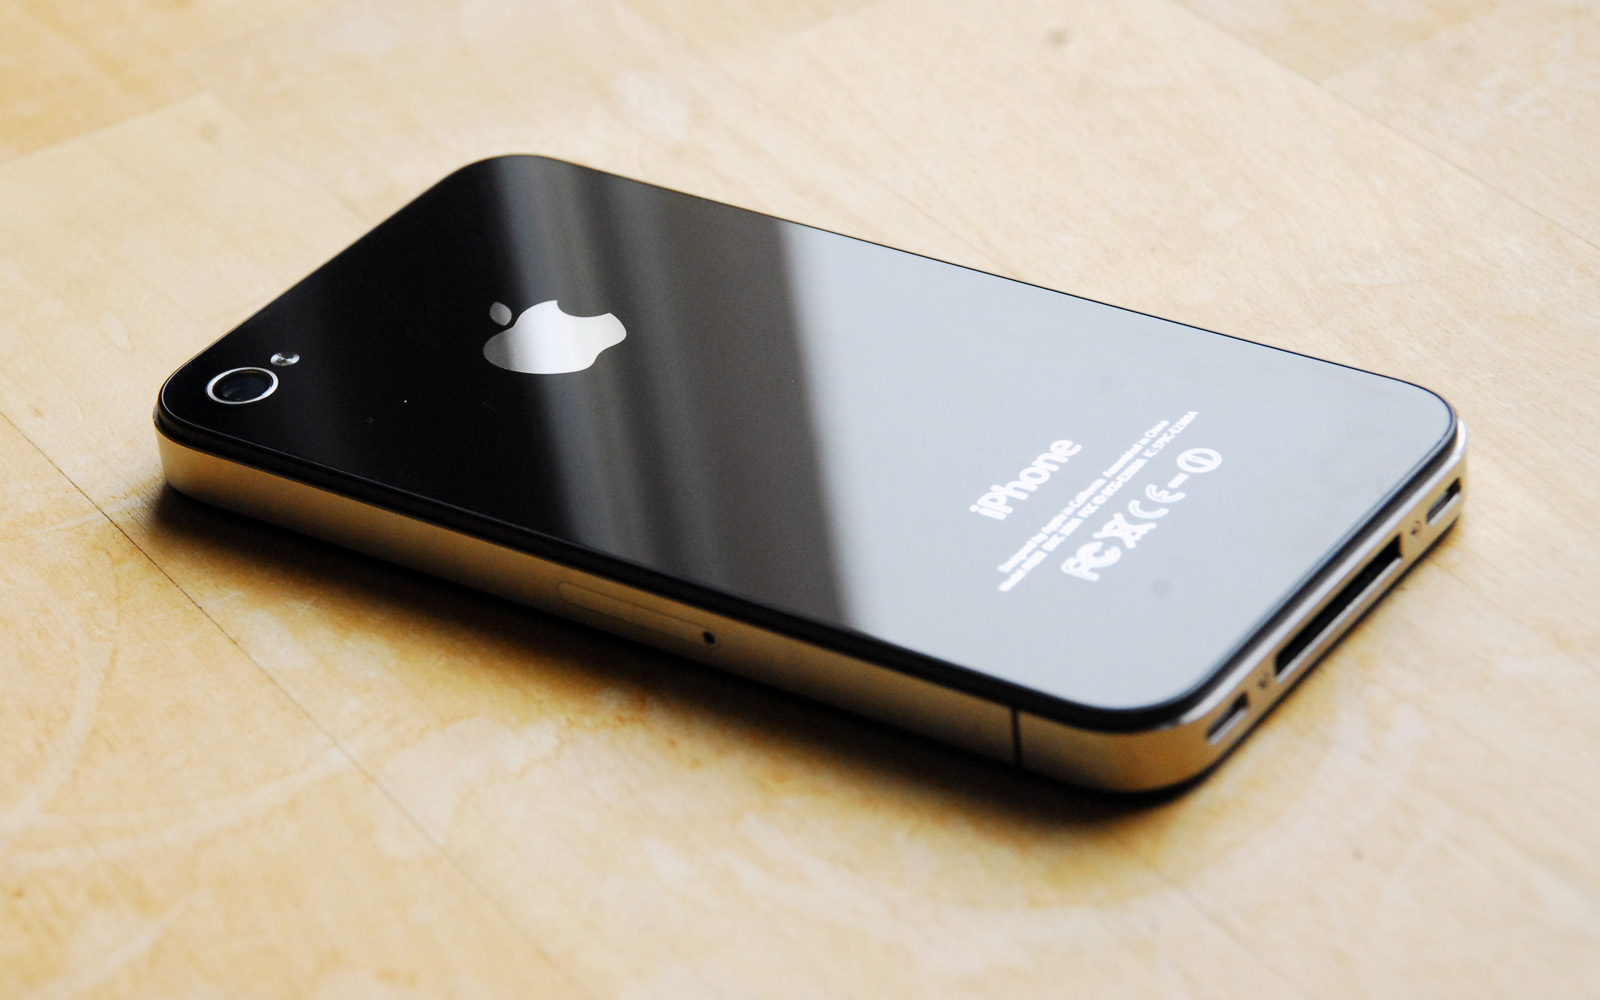 iPhone 4S to be SIM unlocked on Sprint; Verizon after 60 days